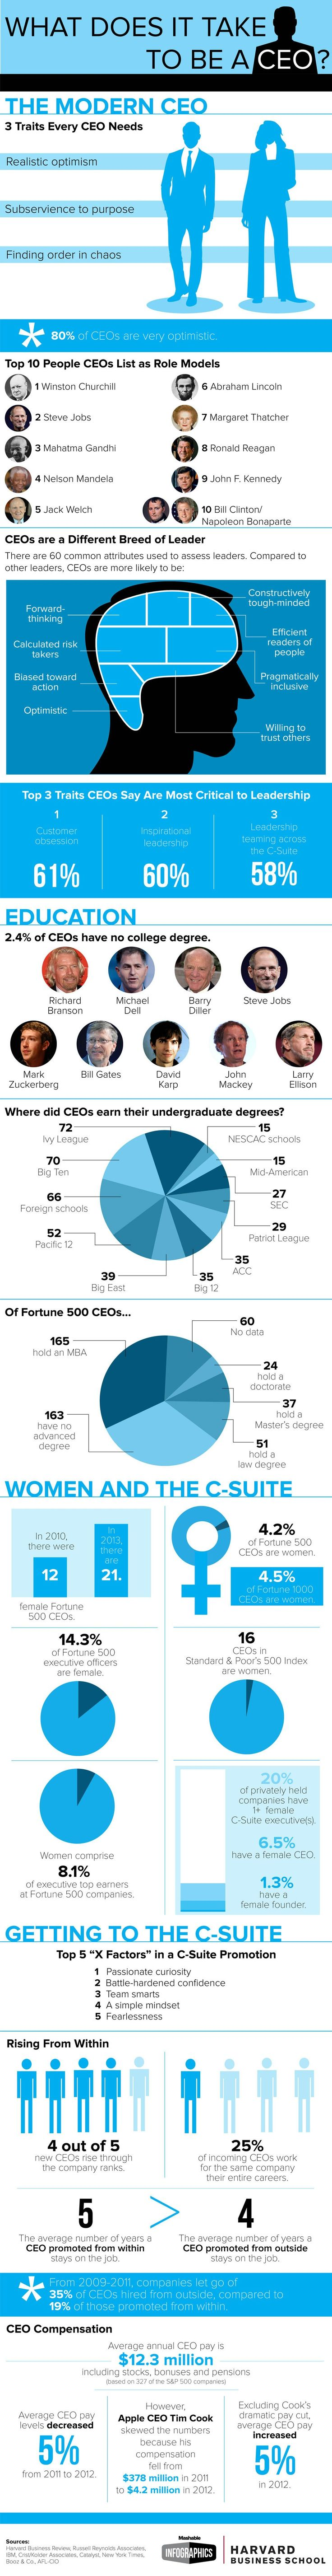 Here's what it takes to be a CEO.